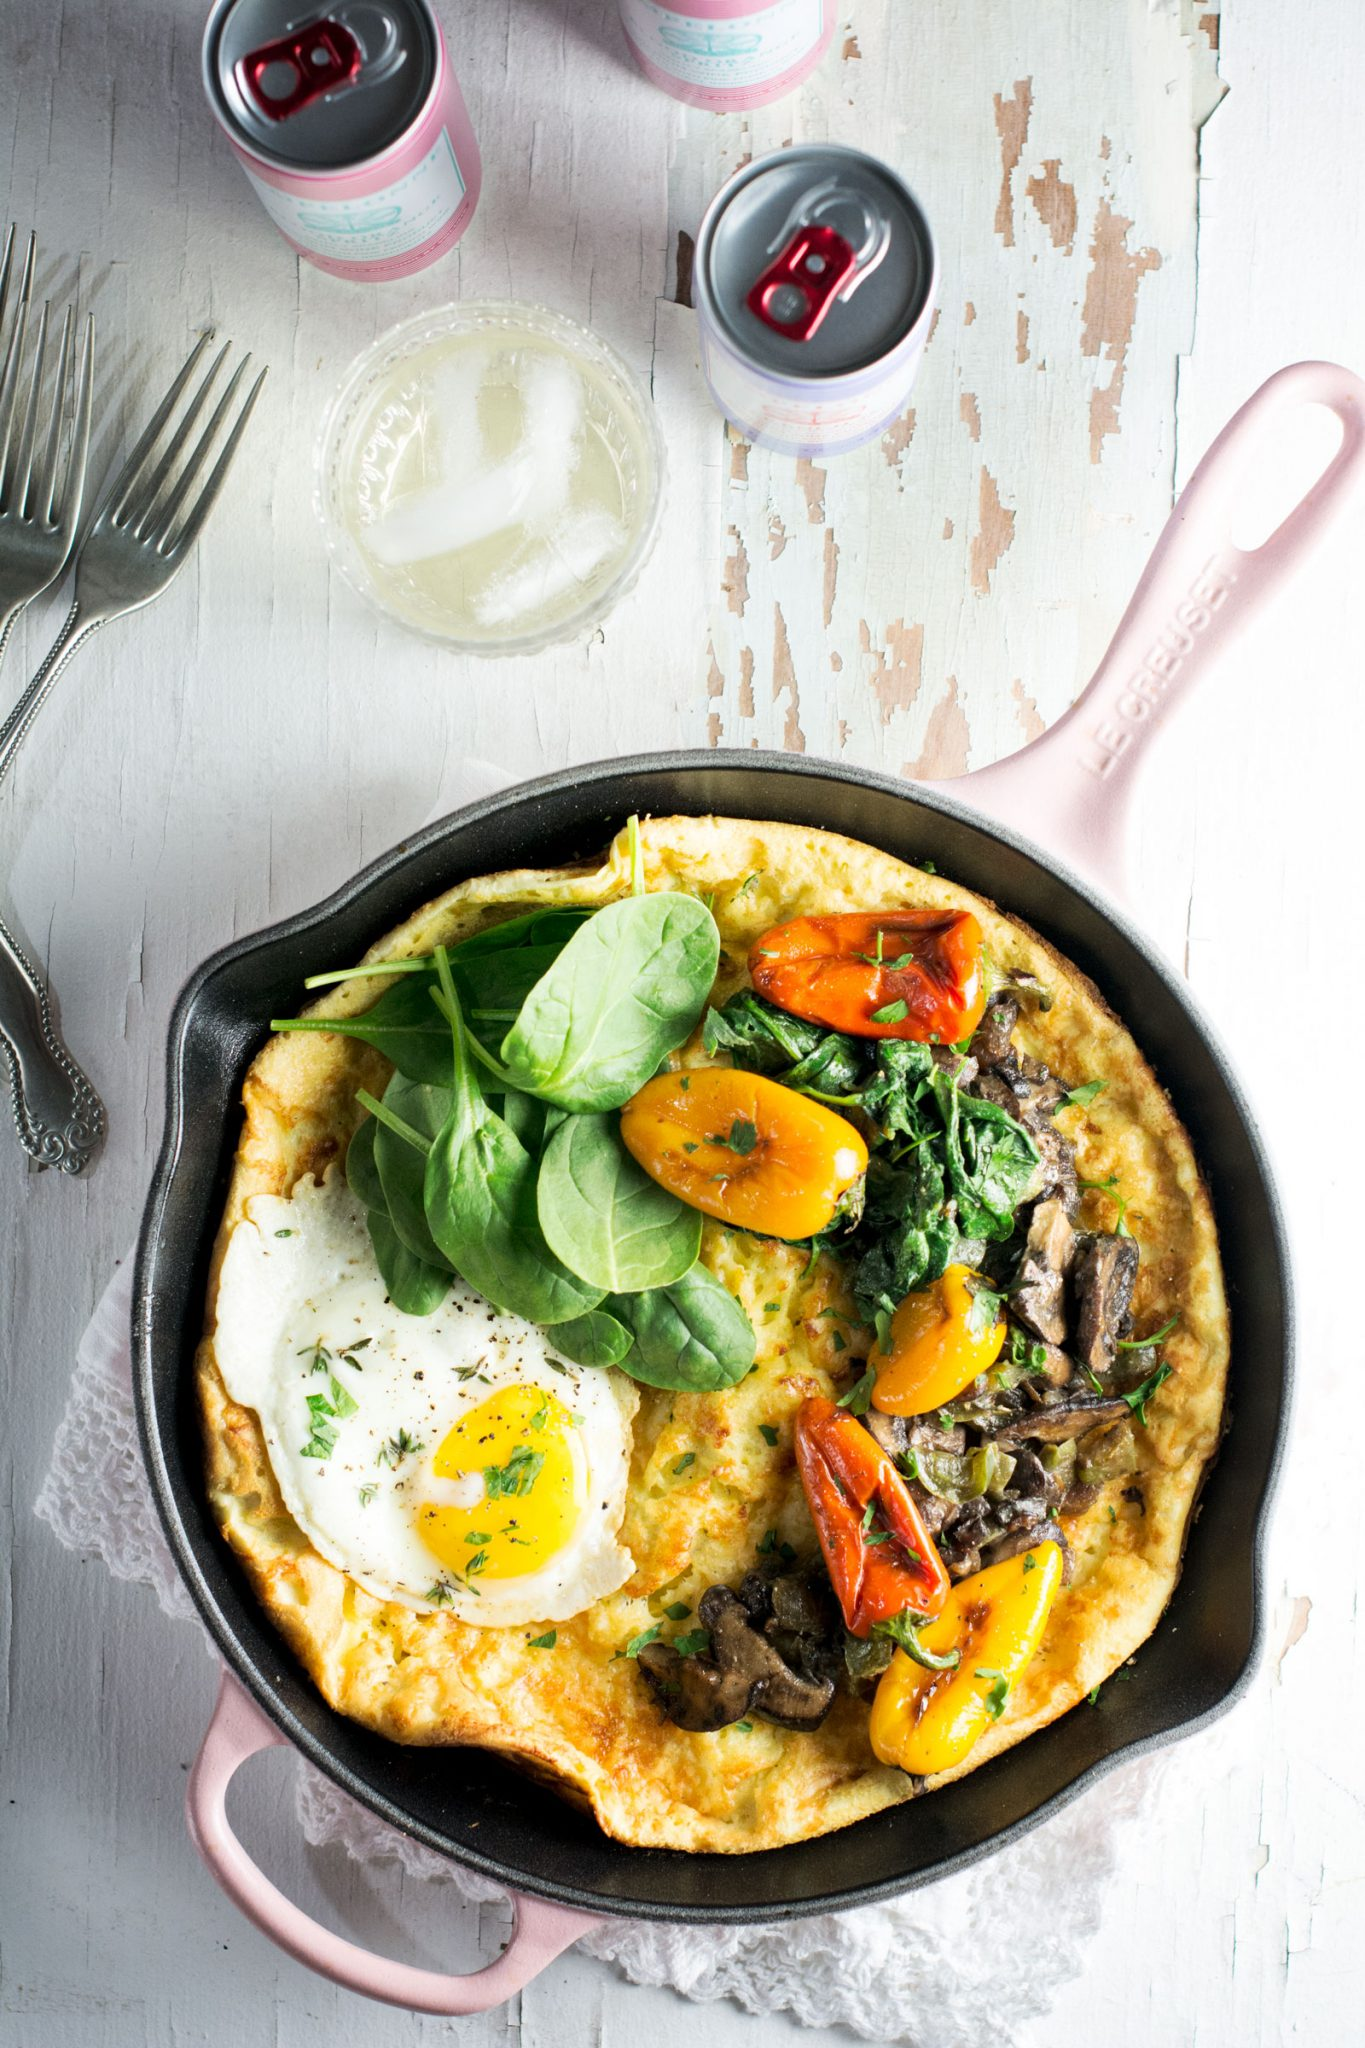 Savory Dutch Baby being served along with @enjoyPampelonne and made in my favorite skillet from @LeCreuset. Get the recipe at Little Figgy Food. #ad #LeCreusetLove #EnjoyPampelonne